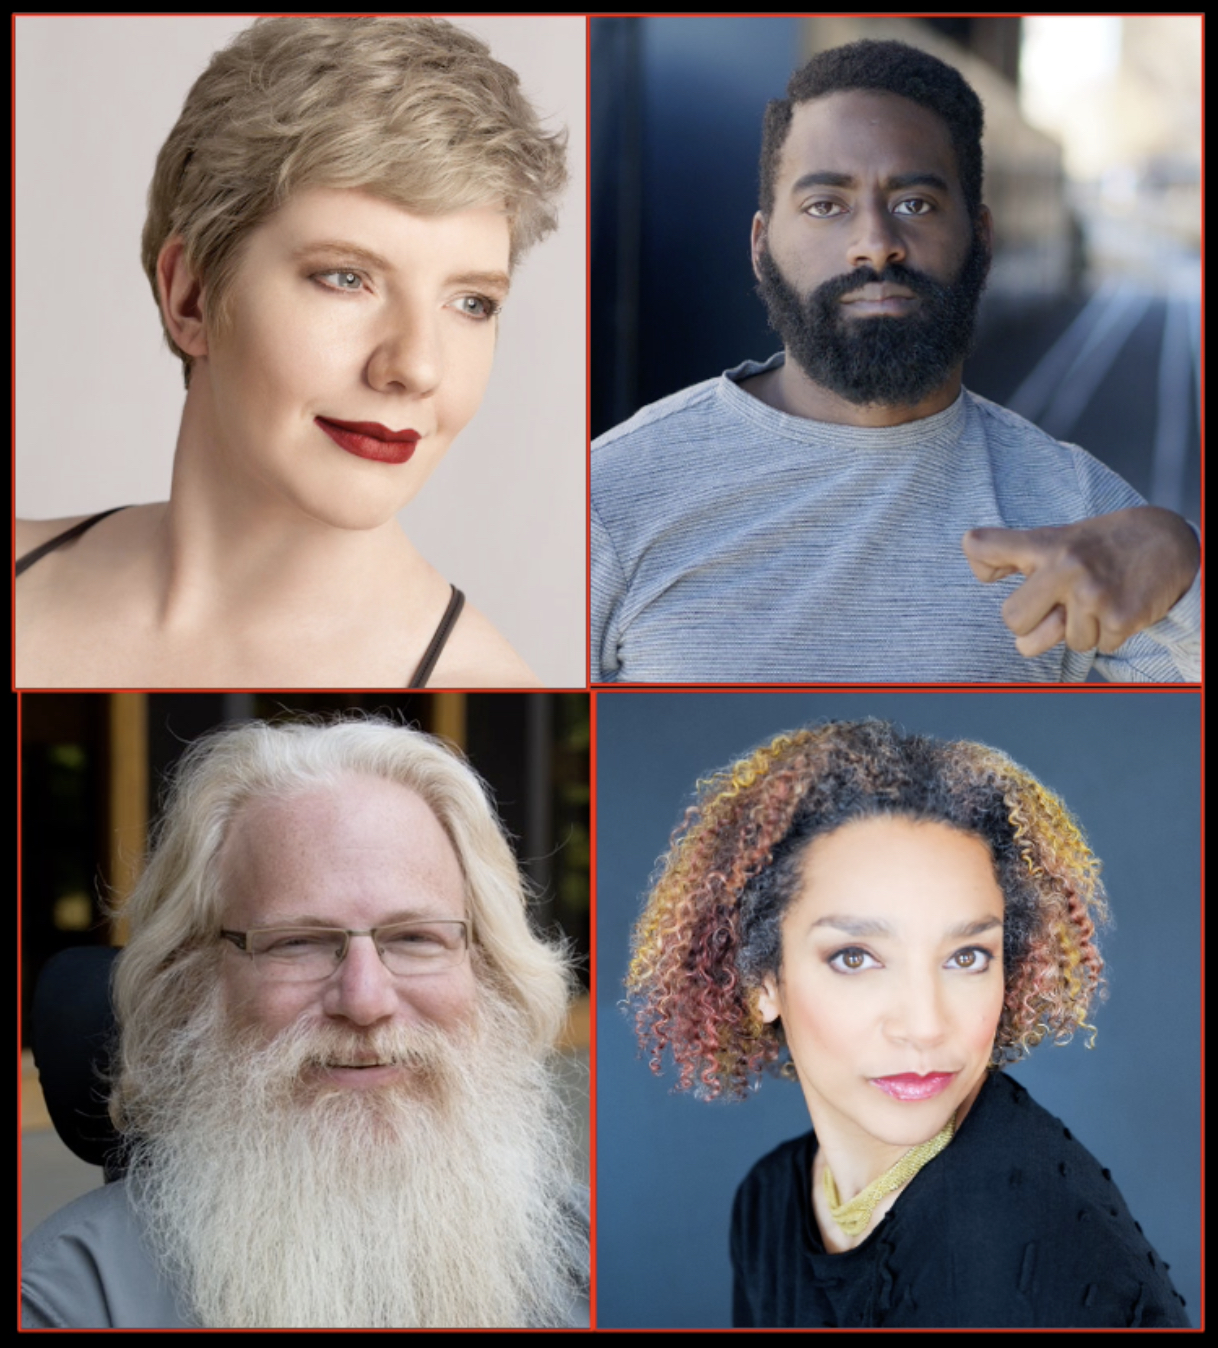 Laurel Lawson, a white woman with short blonde hair and blue eyes, gazes away from the camera with a wry smile highlighted by crimson lipstick. Jerron Herman, a Black man with a beard and black hair, looks directly into the camera; he wears a blue shirt with tiny stripes and holds his palsied hand in front of his chest. Alice Sheppard, a light-skinned multiracial Black woman with short very curly brown, red, and golden hair, looks over her shoulder and stares into the camera intensely. Michael Maag, a white man with a large white beard and flowing white/blonde hair, smiles at the camera; he wears thin framed glasses.